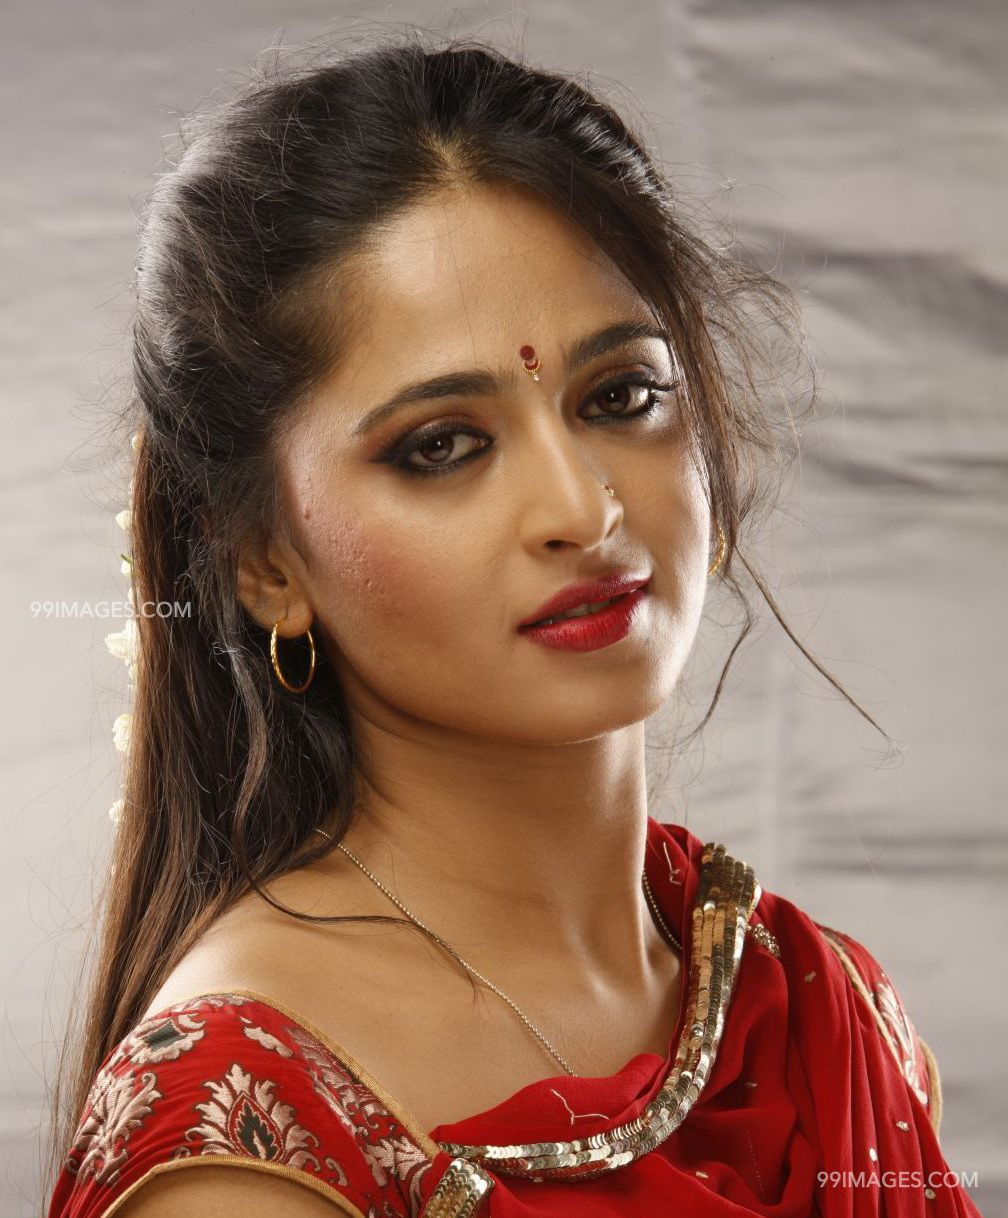 Anushka Shetty Beautiful HD Photoshoot Stills (1080p) (3624) - Anushka Shetty